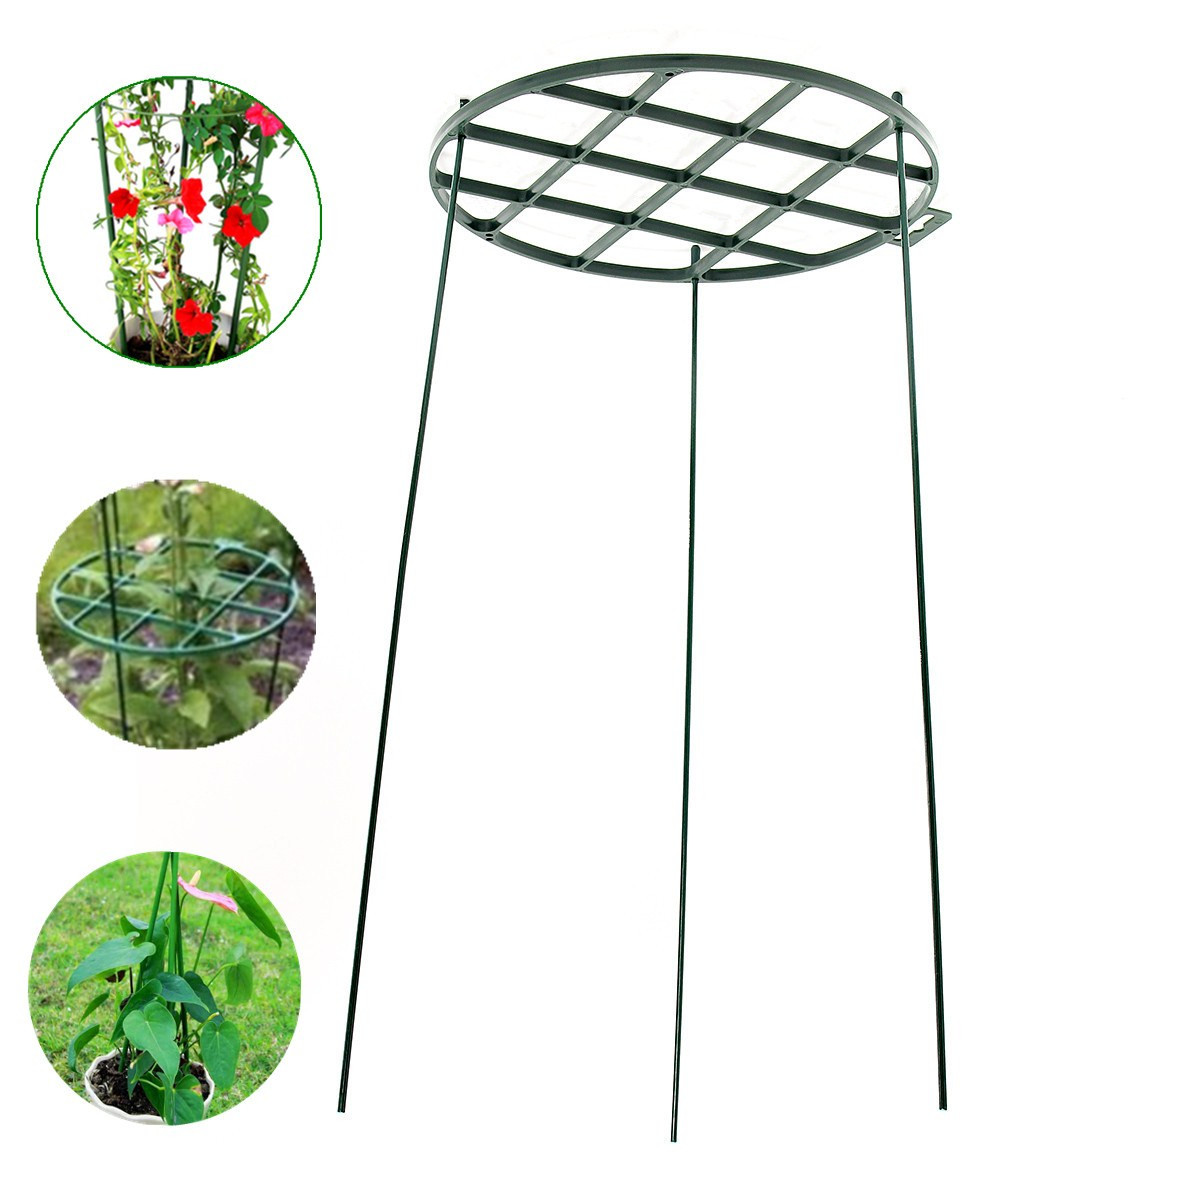 Plastic Round Grow Through Climbing Plant Support Plate Stand For Peonies Lupin Green Garden Courtyard Ornaments Accessories